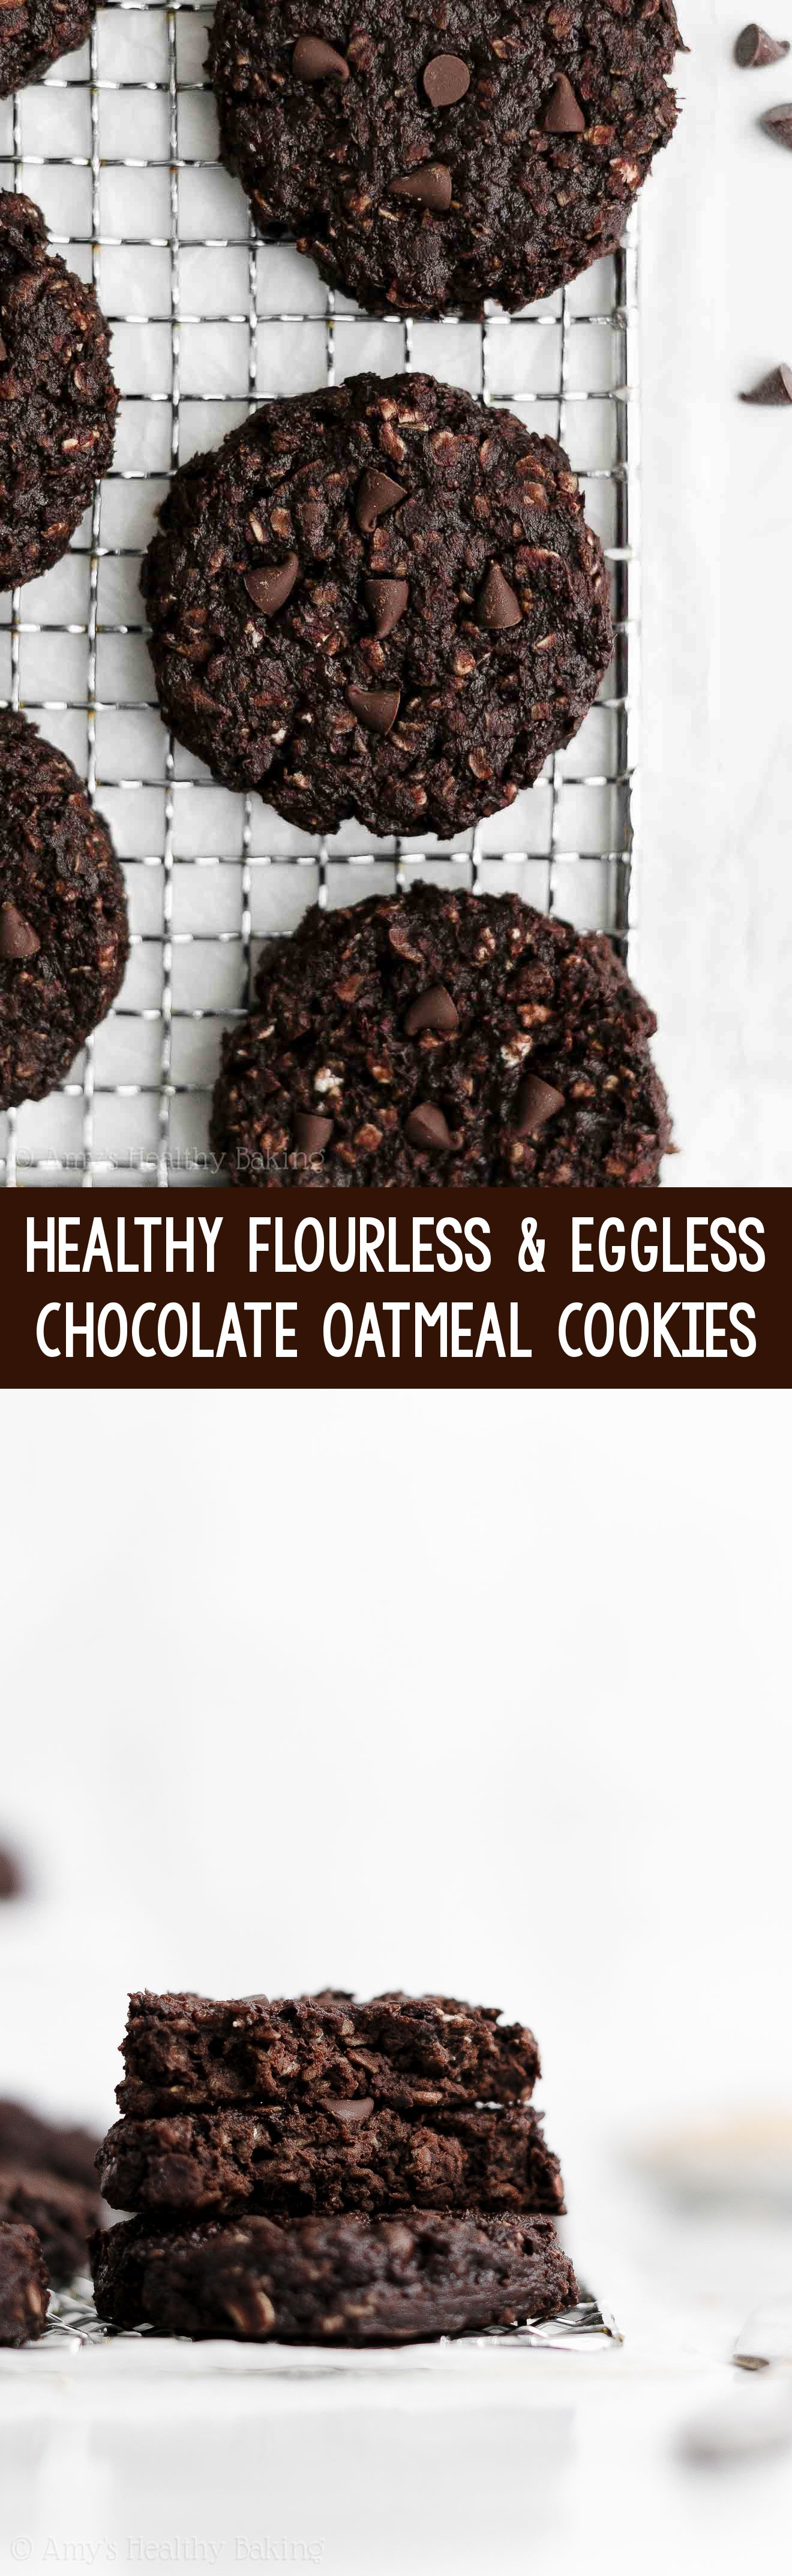 Best Easy Healthy Gluten Free Vegan Flourless Eggless Double Chocolate Oatmeal Cookies